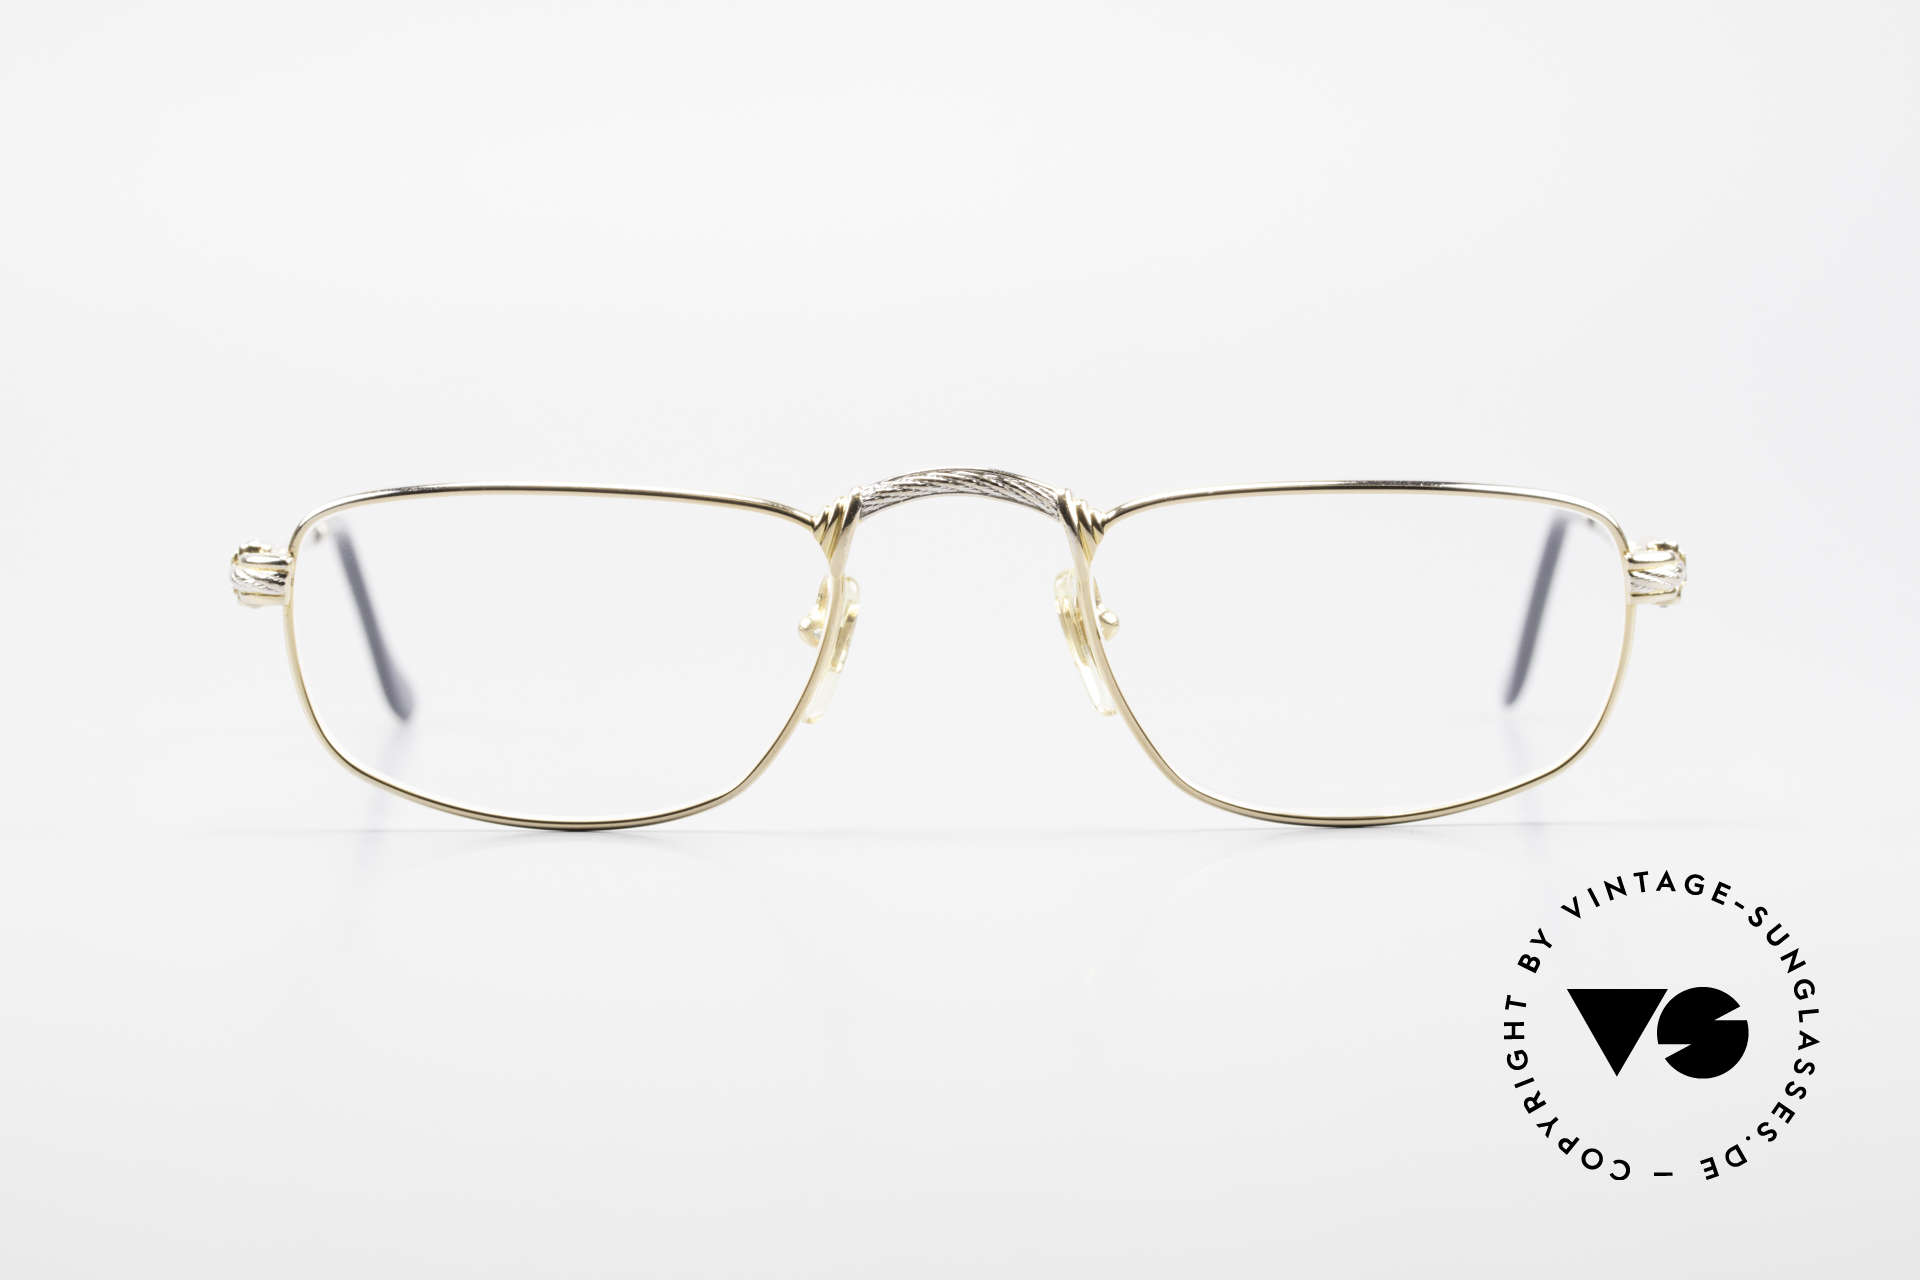 Fred Demi Lune Half Moon Reading Glasses, marine design (distinctive Fred) in HIGH-END quality, Made for Men and Women